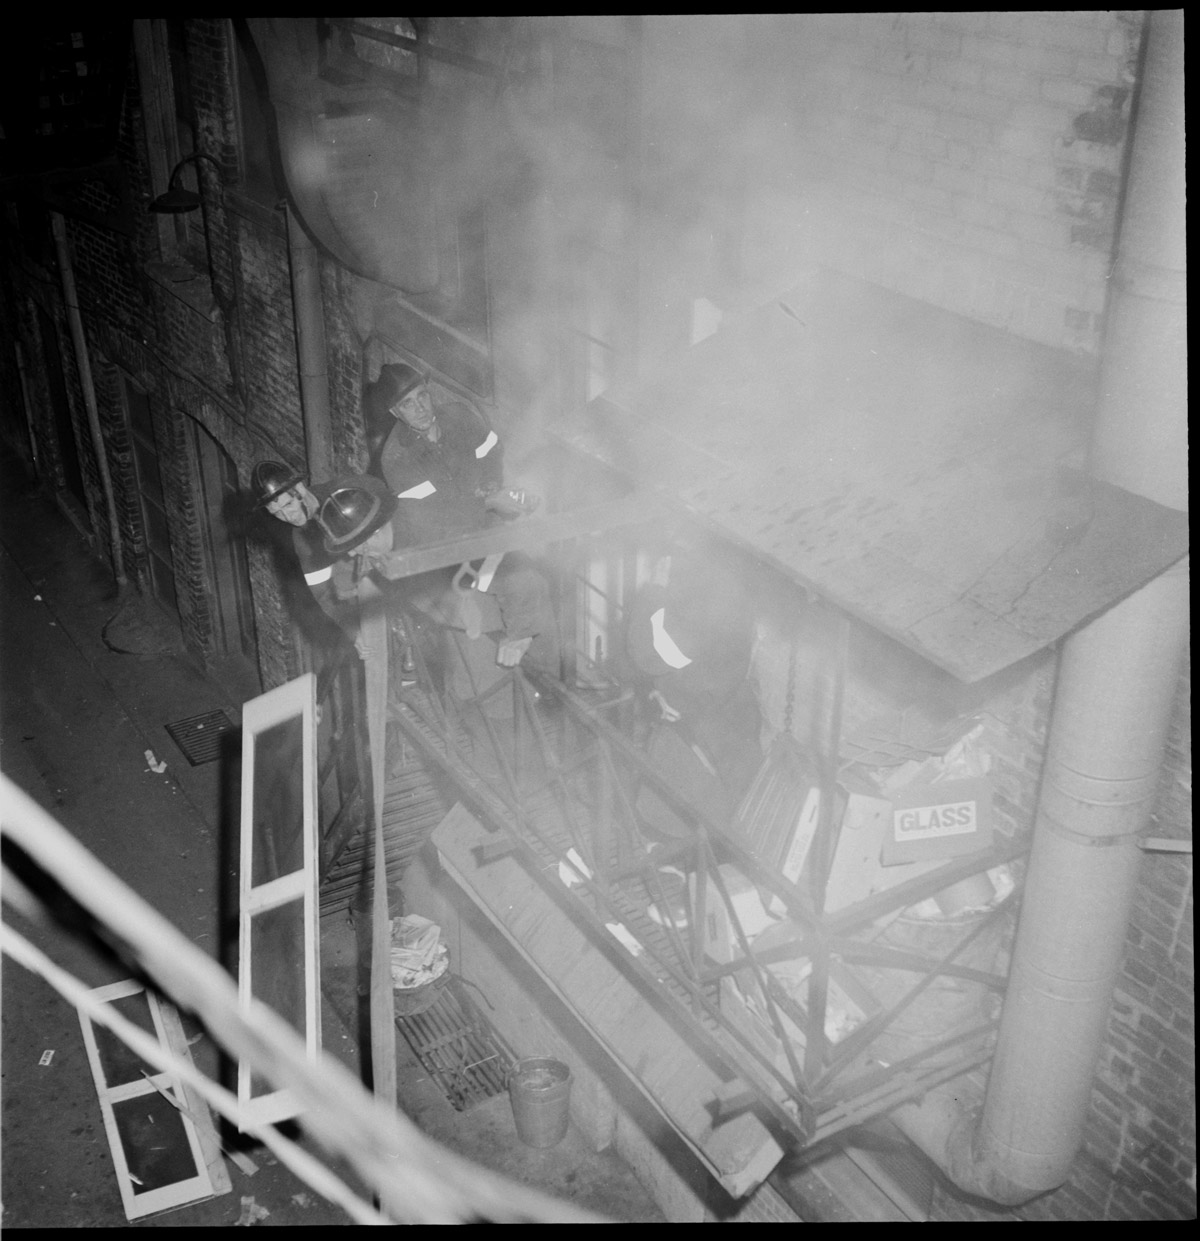 Four fire fighters battling smoke on a second floor fire escape